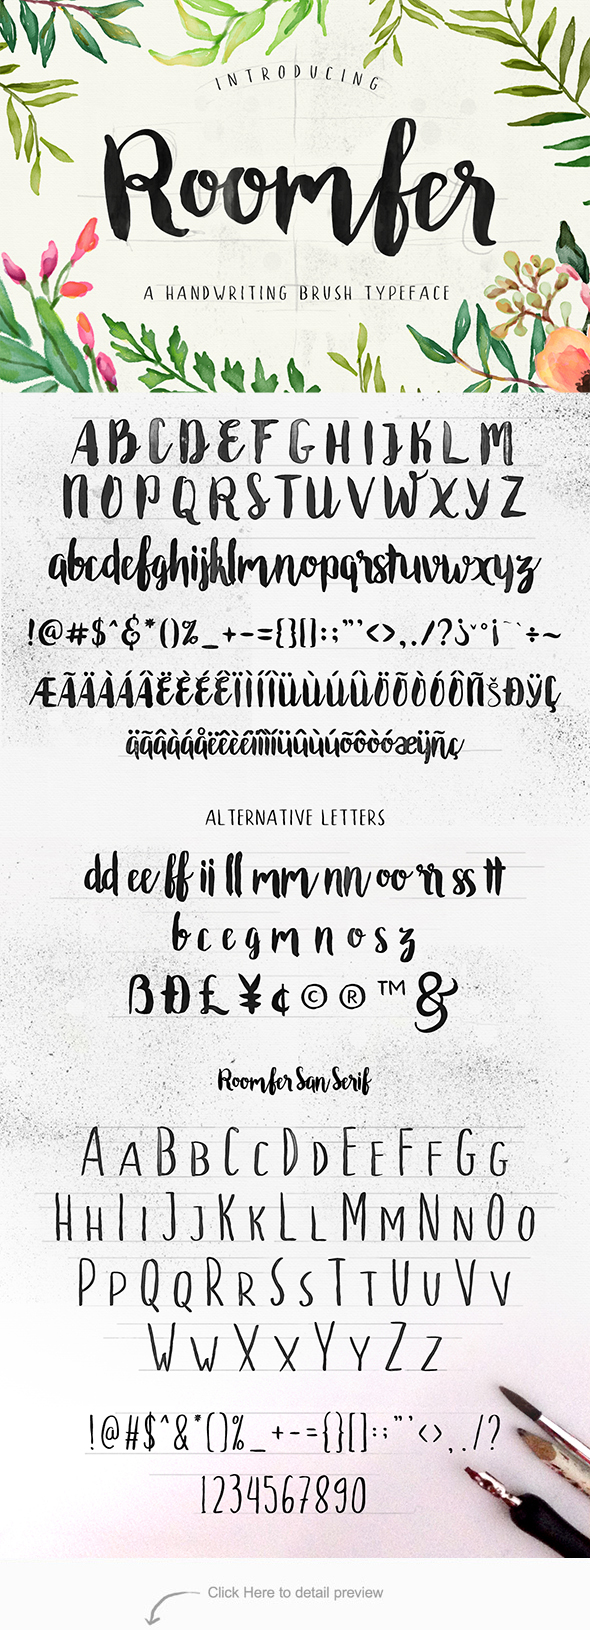 Roomfer font  - Hand-writing Script